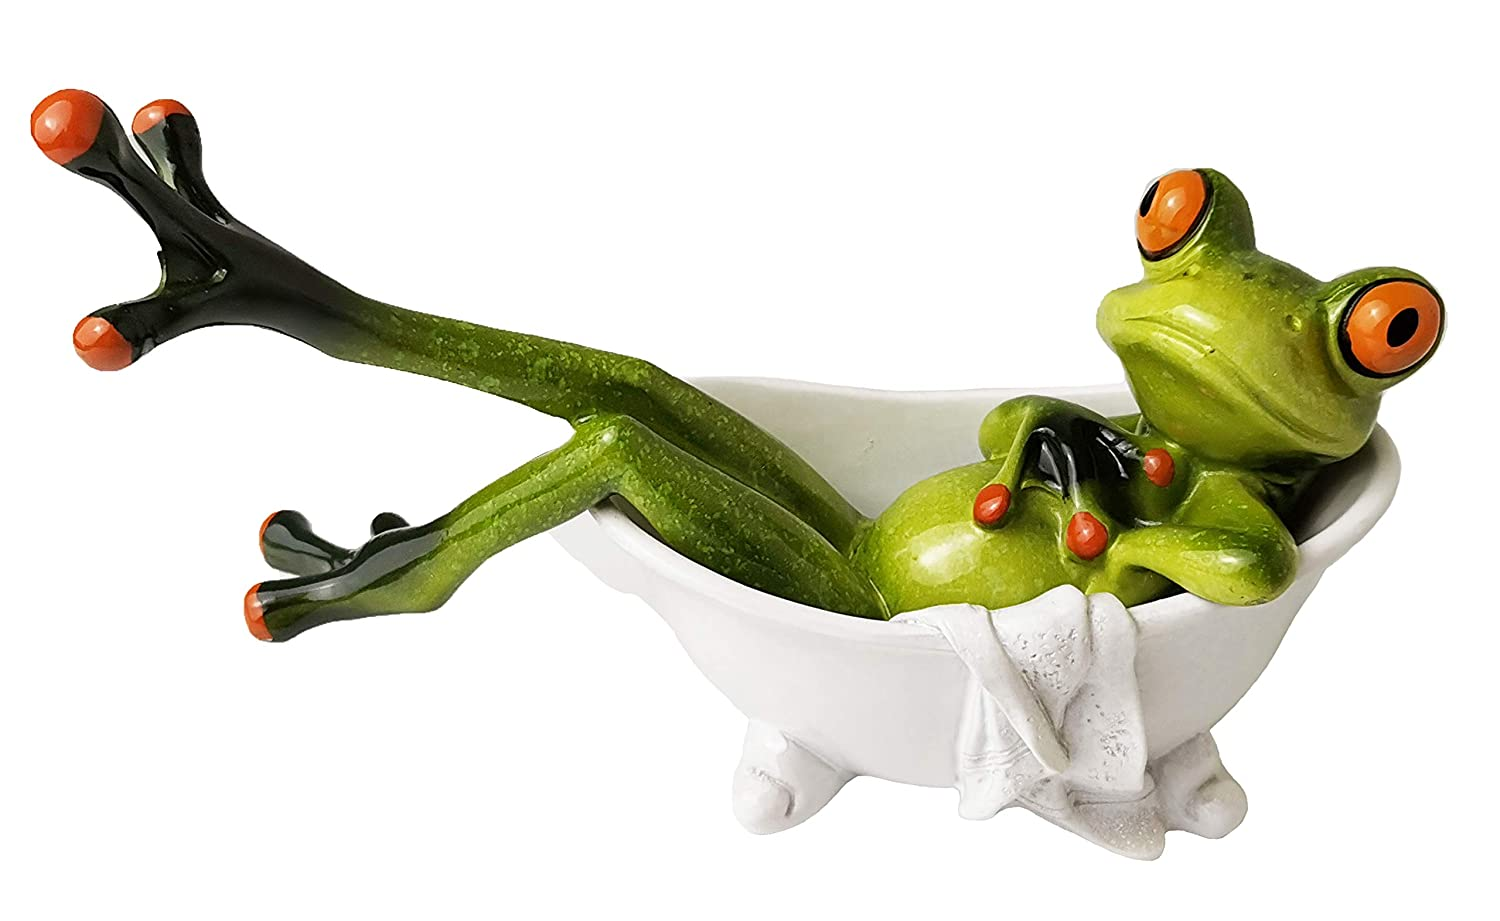 HAPTIME 5.3 inch Adorable Red Eyed Tree Frog Lying in The Bathtub, Funny Decor Figurine for Home Desk Bathroom Decoration (Style B)